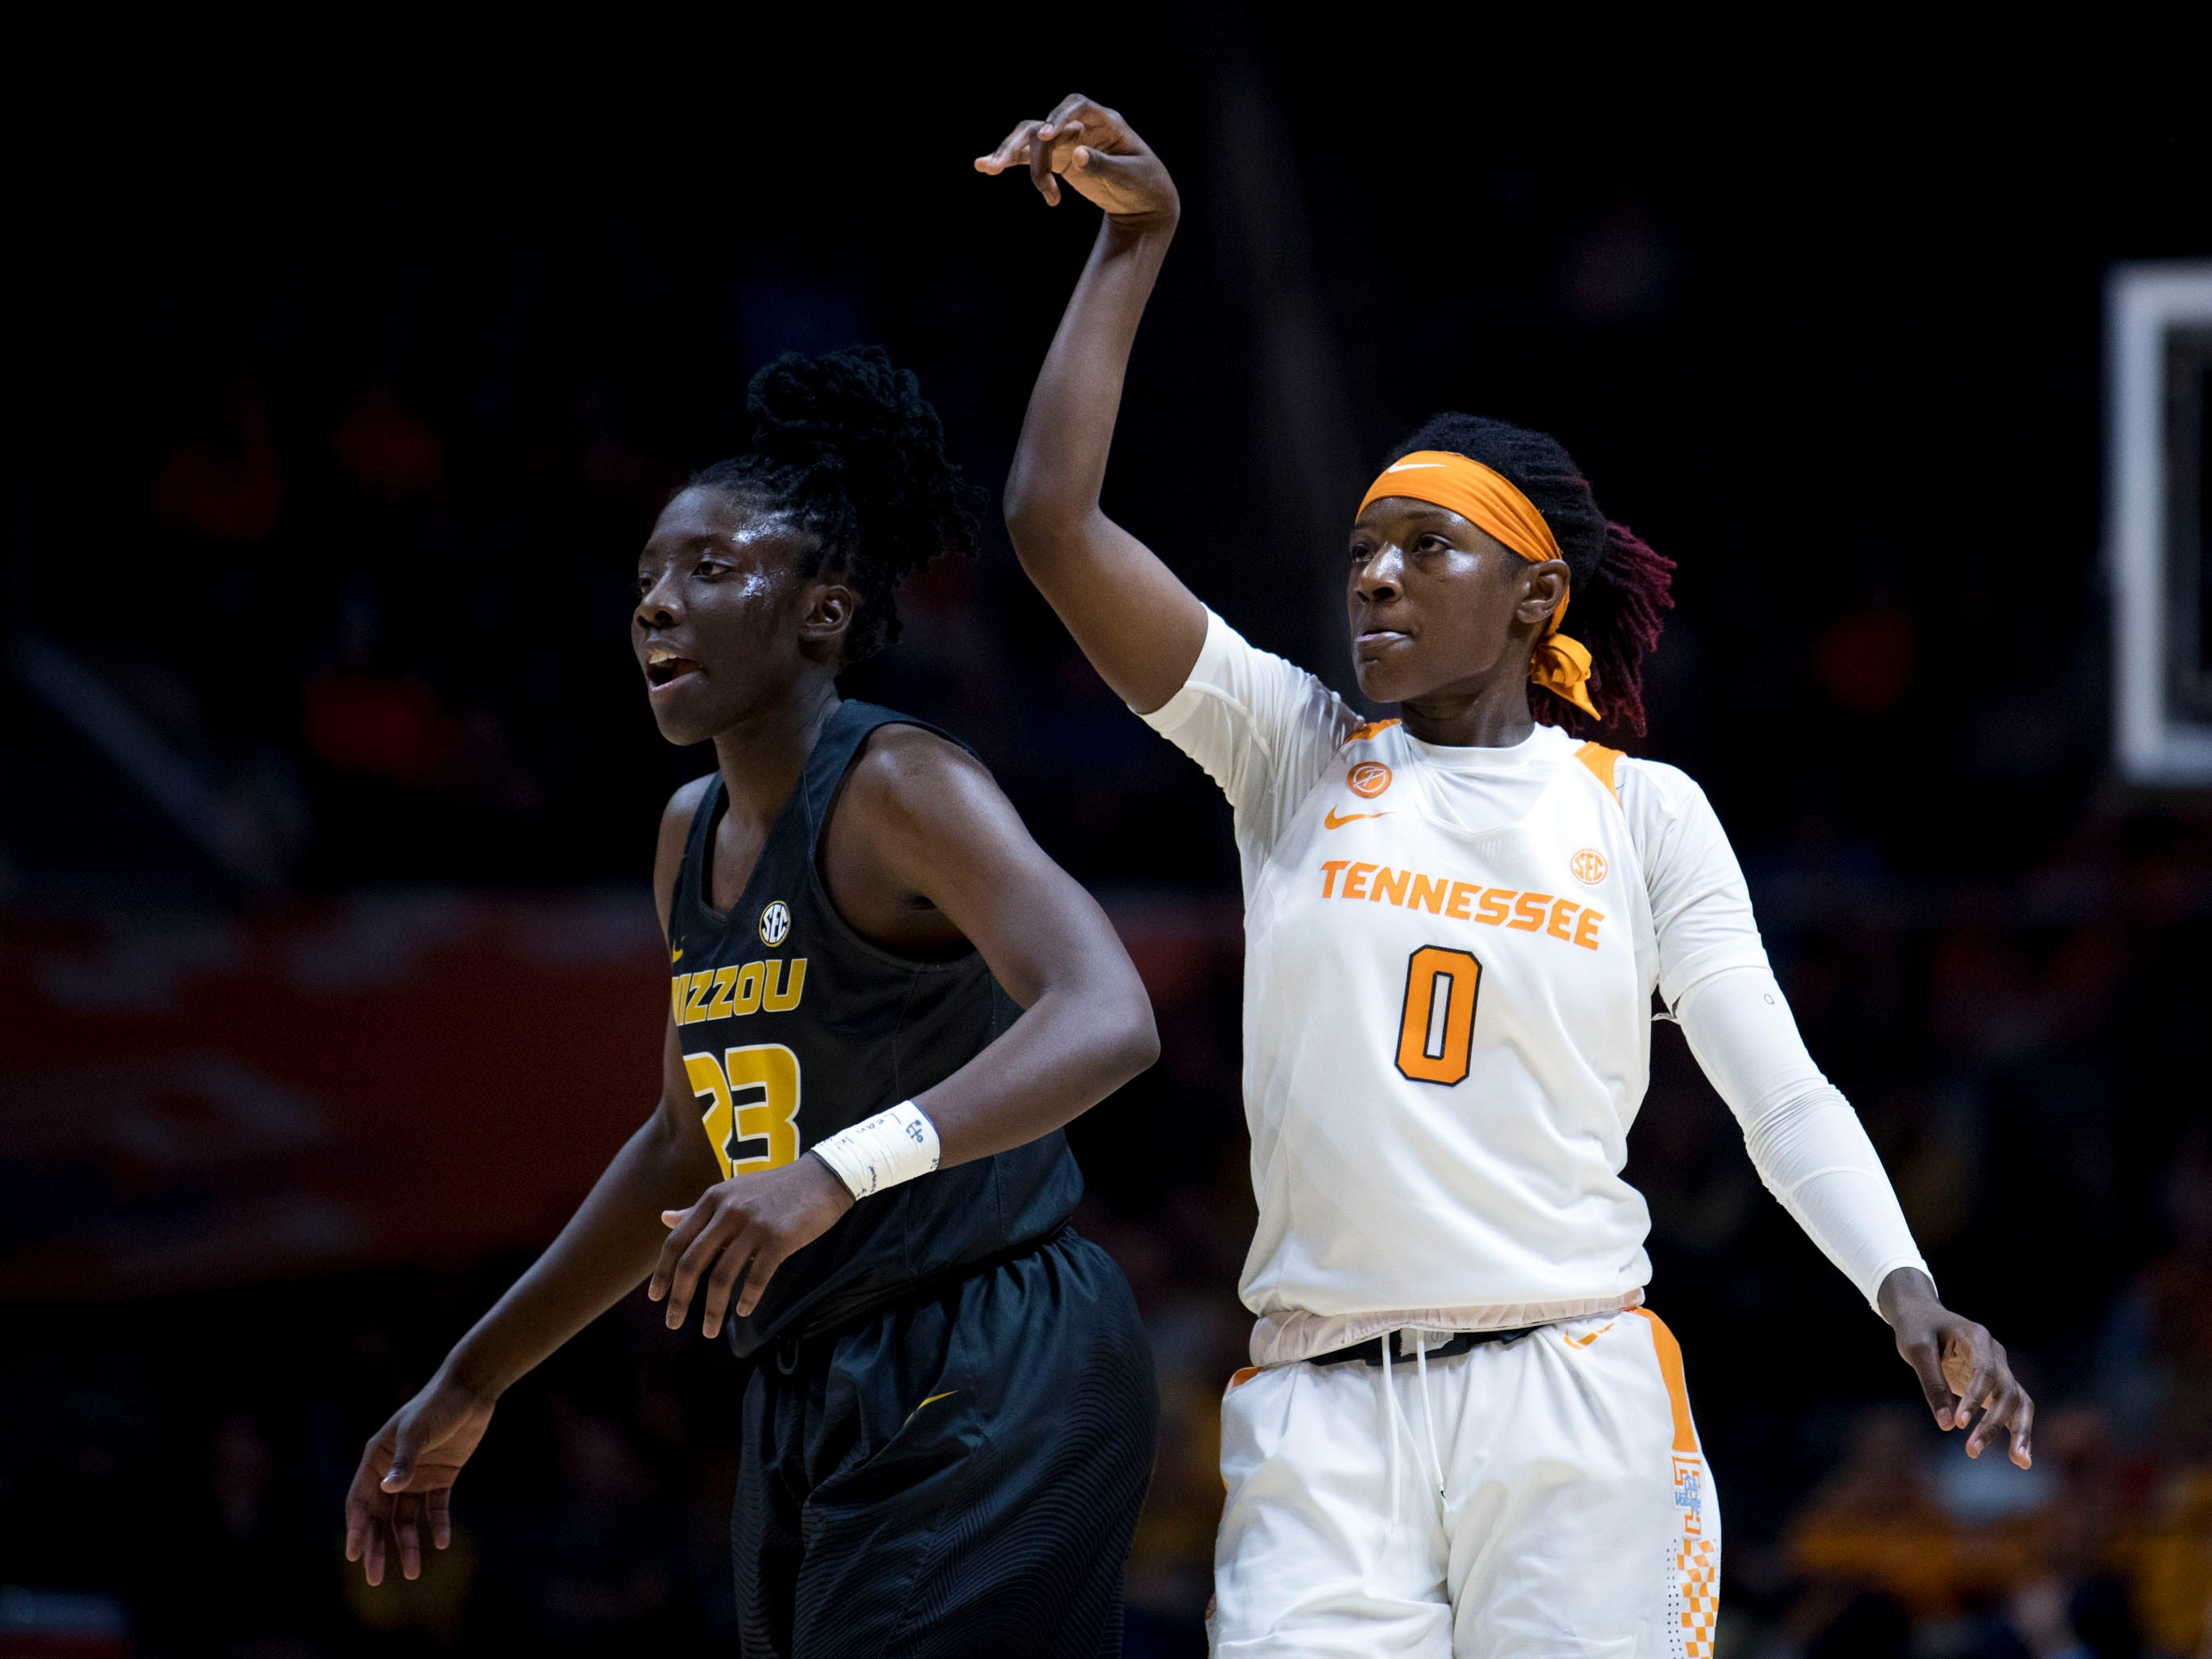 Tennessee's Rennia Davis (0) hits a 3-pointer over Missouri's Amber Smith (23) on Sunday, January 6, 2019.